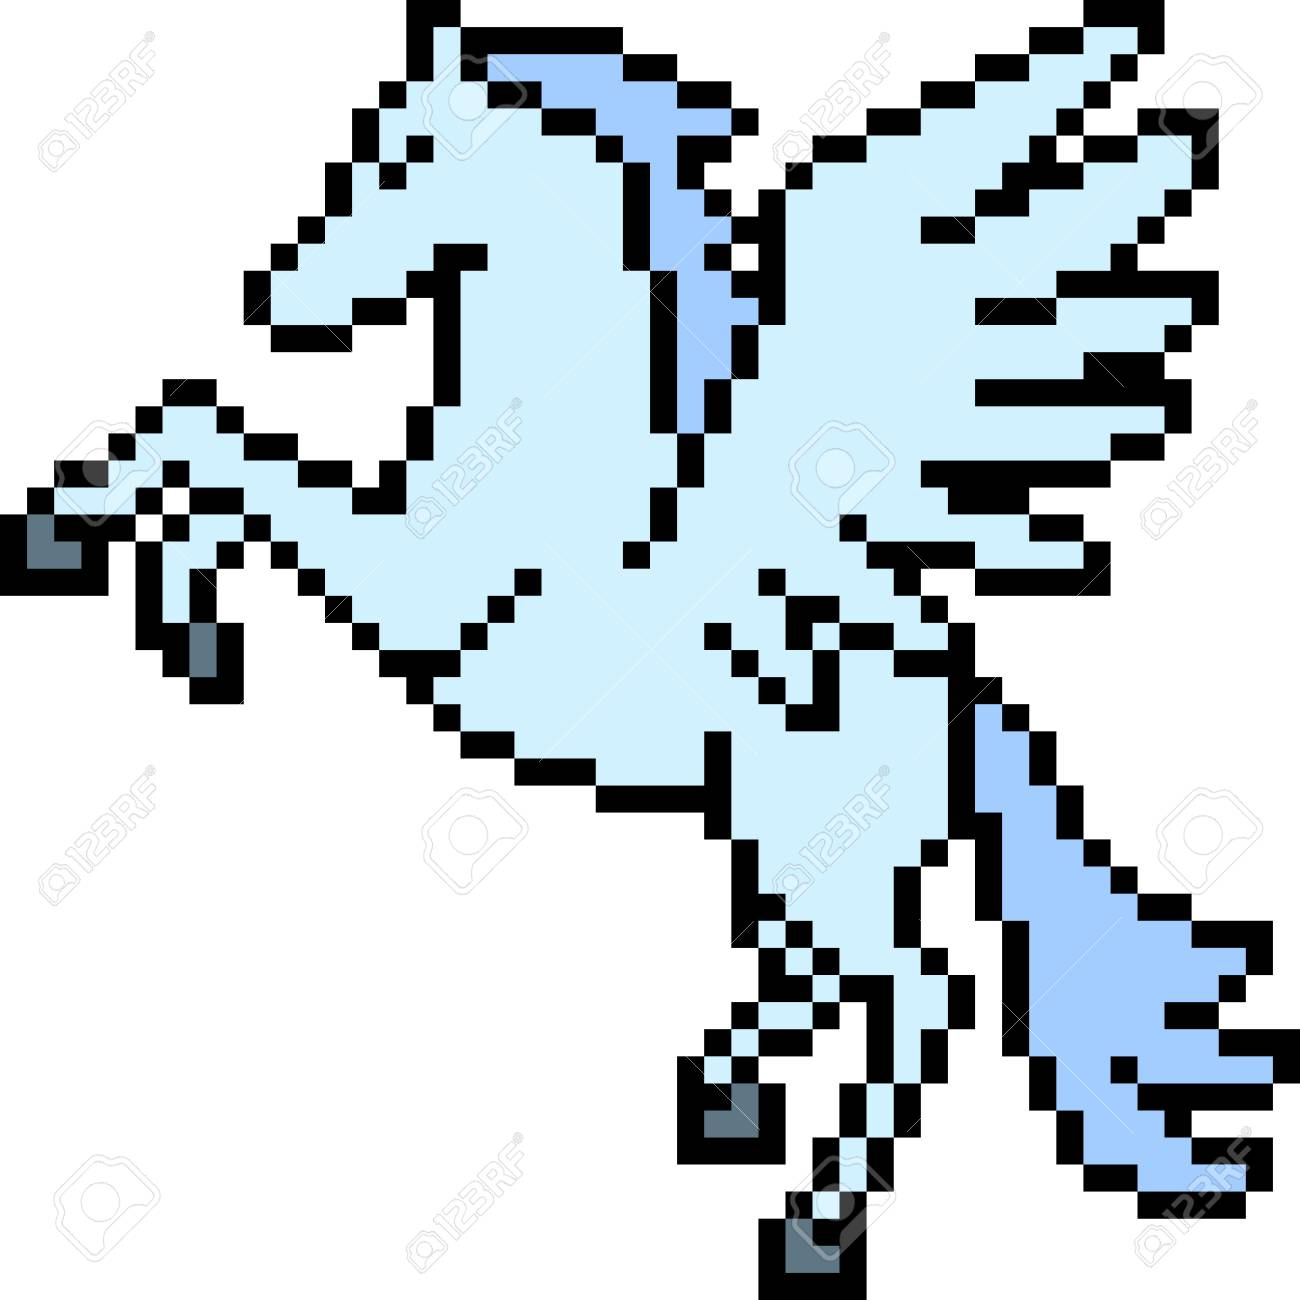 Pixel Art Pegasus Isolated Royalty Free Cliparts Vectors And Stock